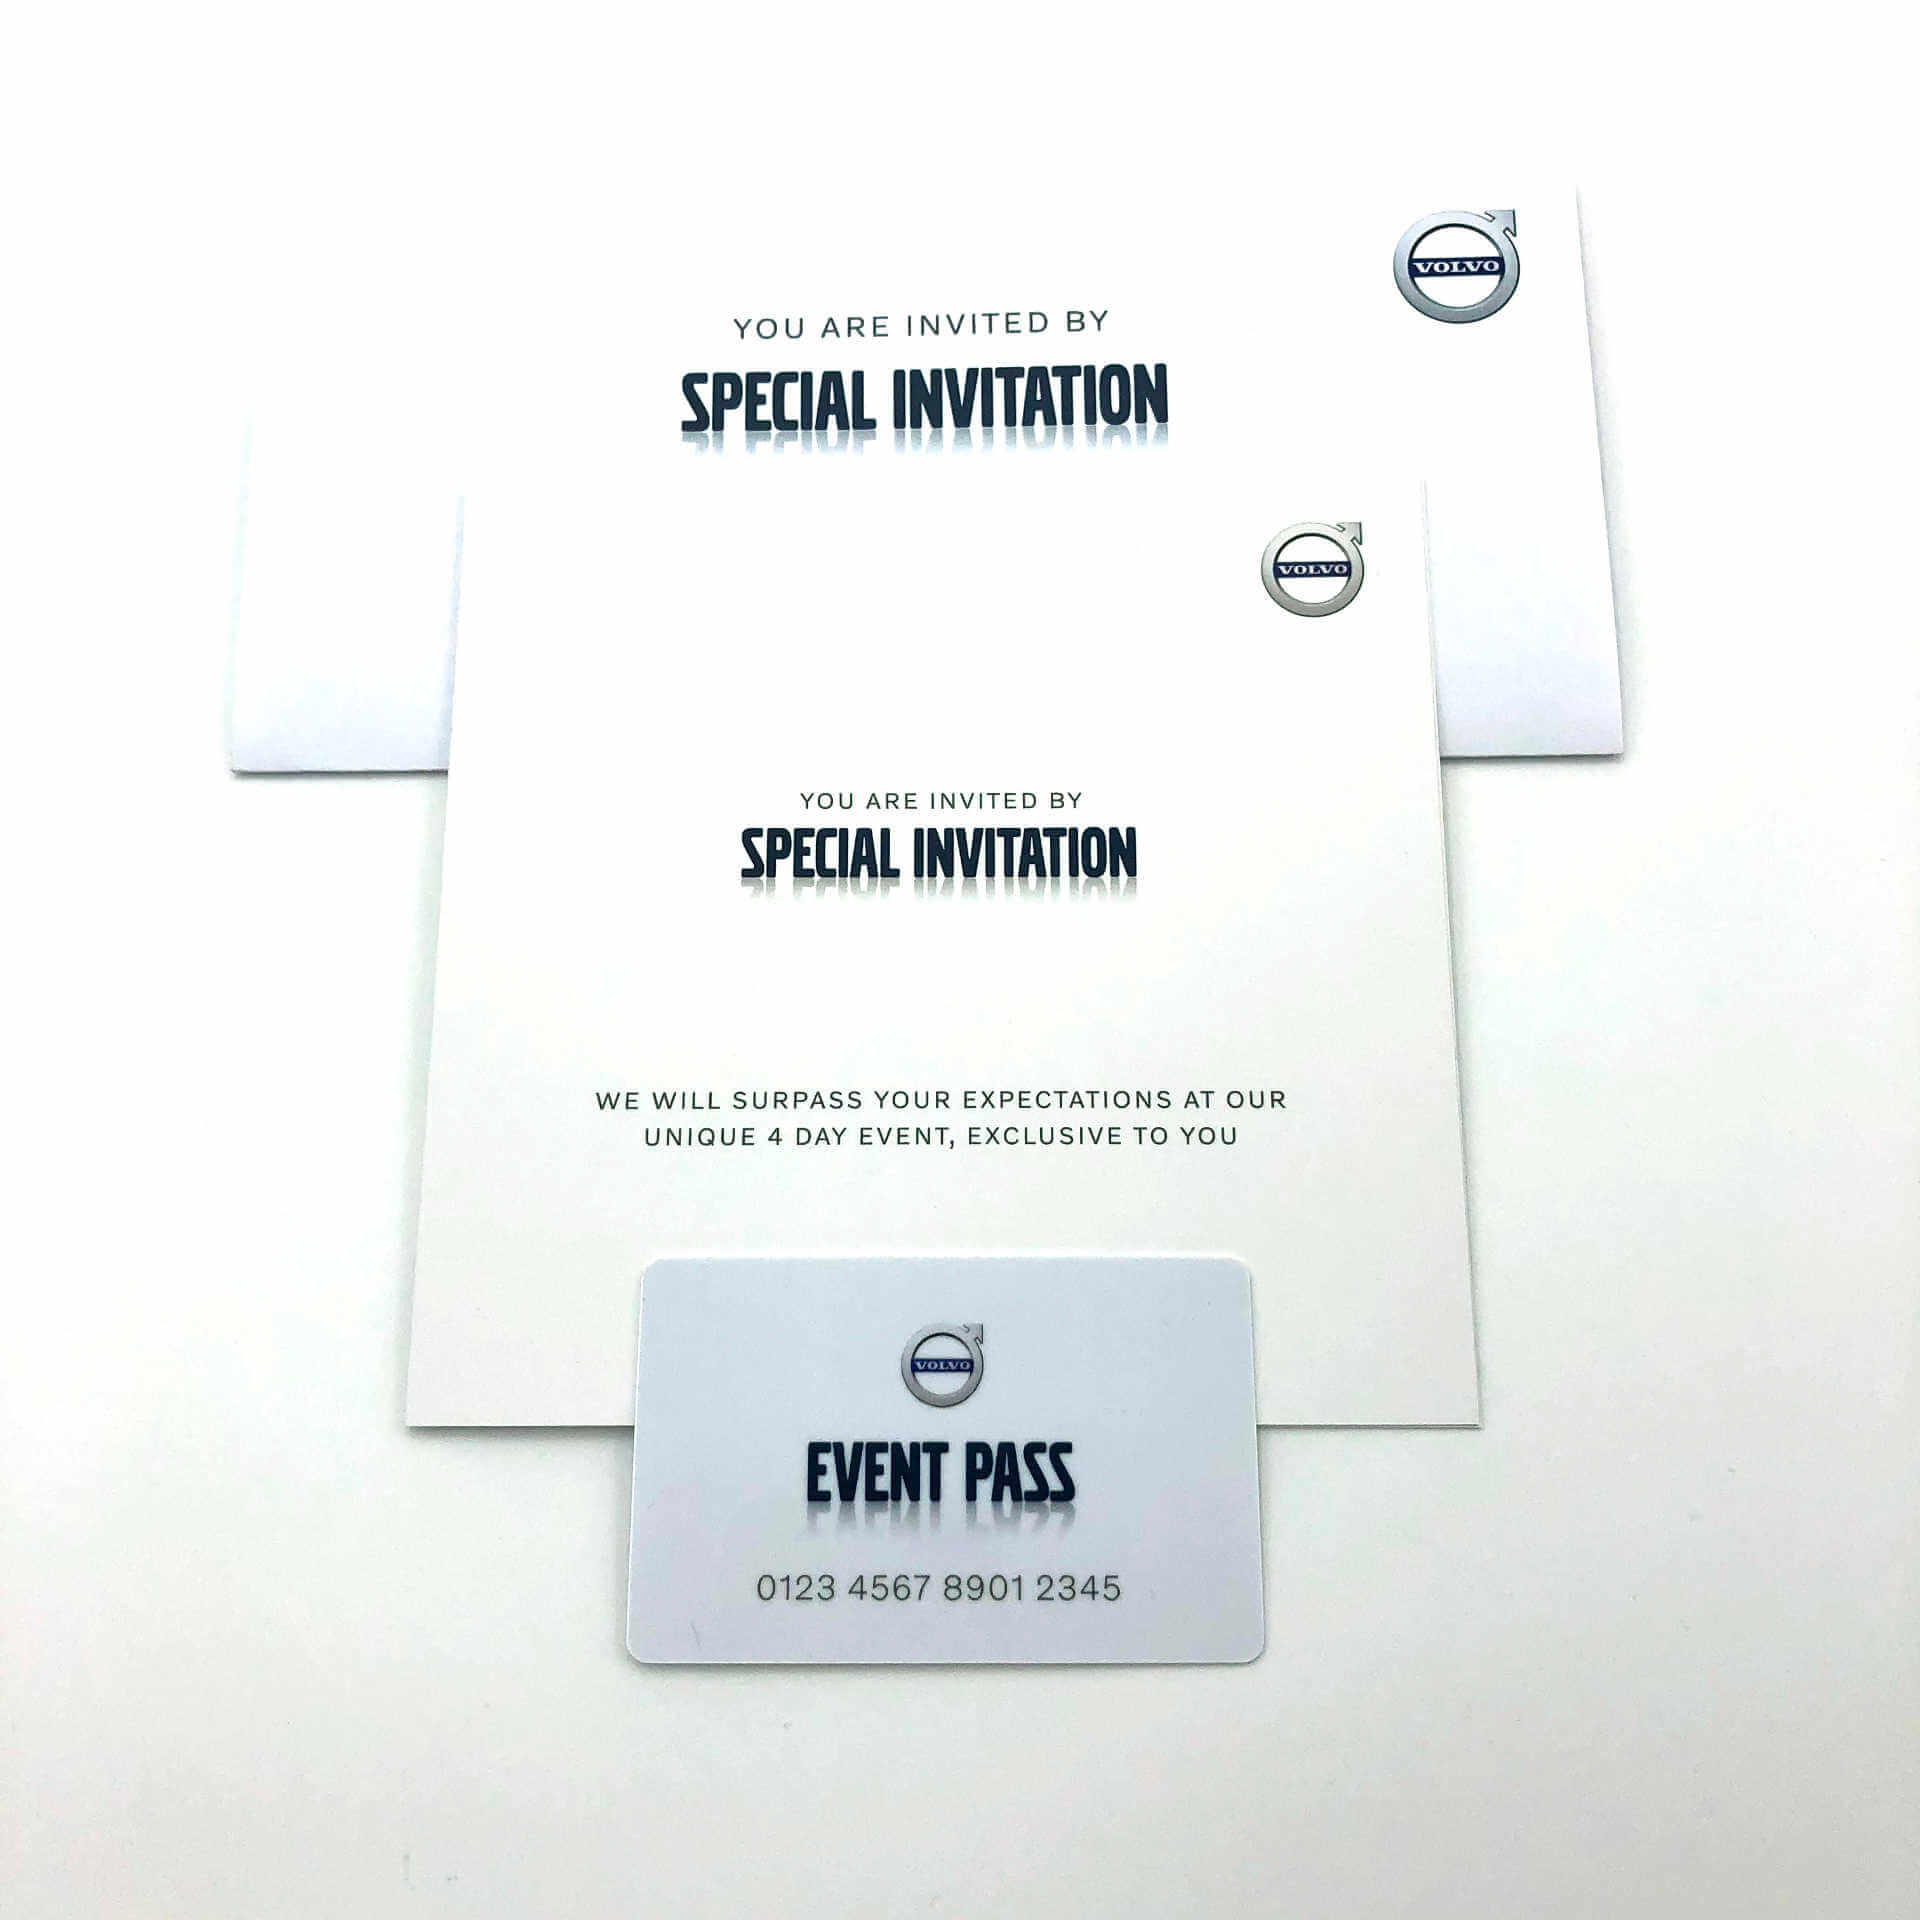 Mill Volvo Special Event Mailer and Guest pass